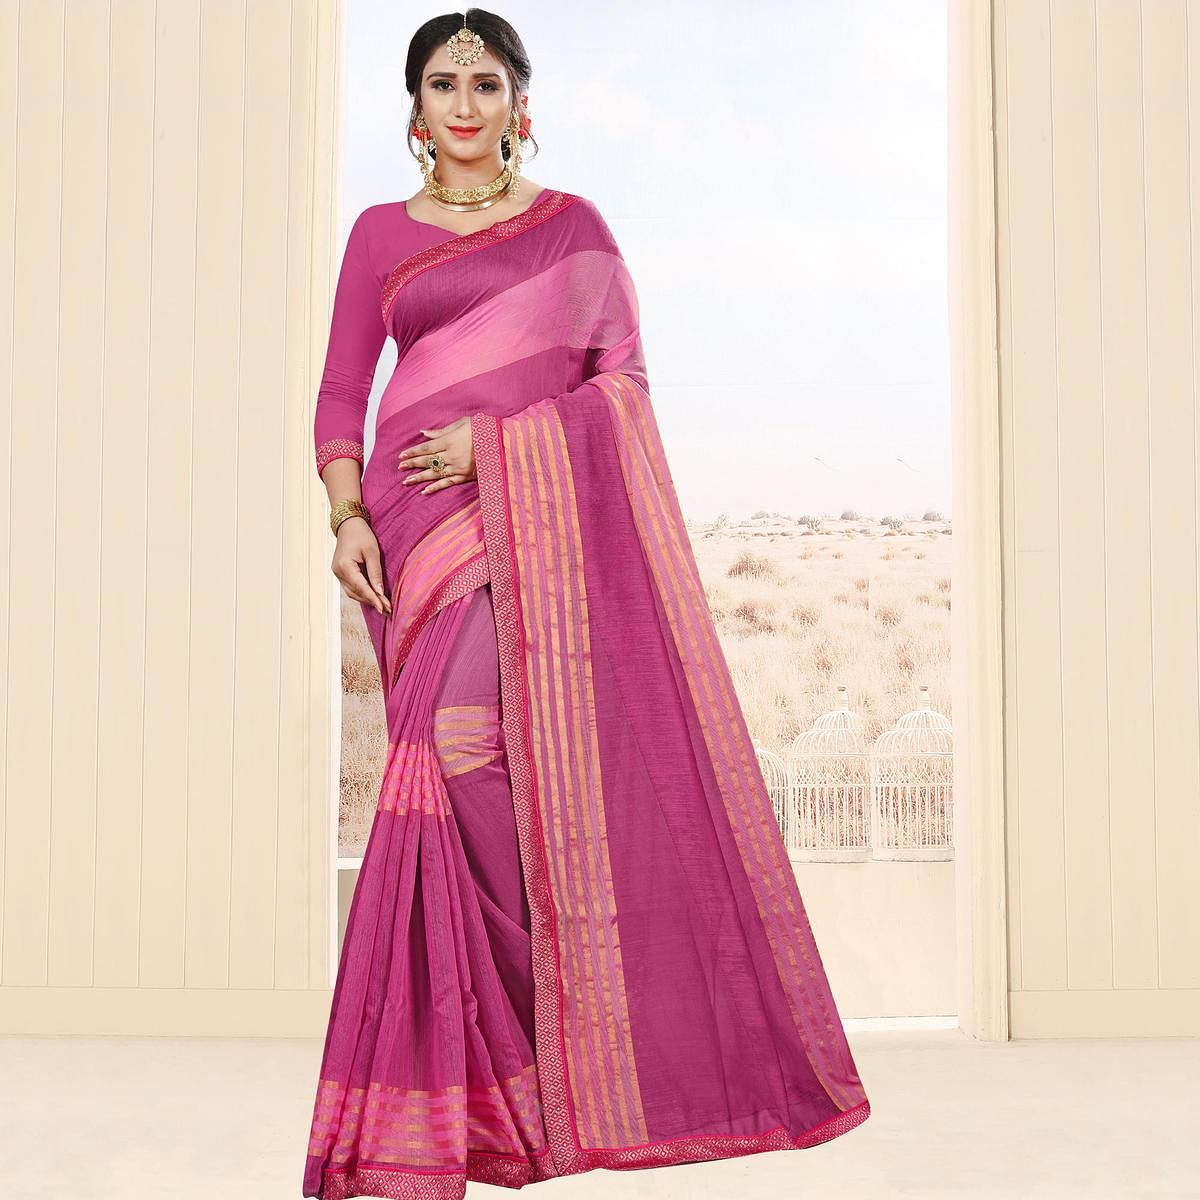 Opulent Pink Colored Festive Wear Cotton Saree